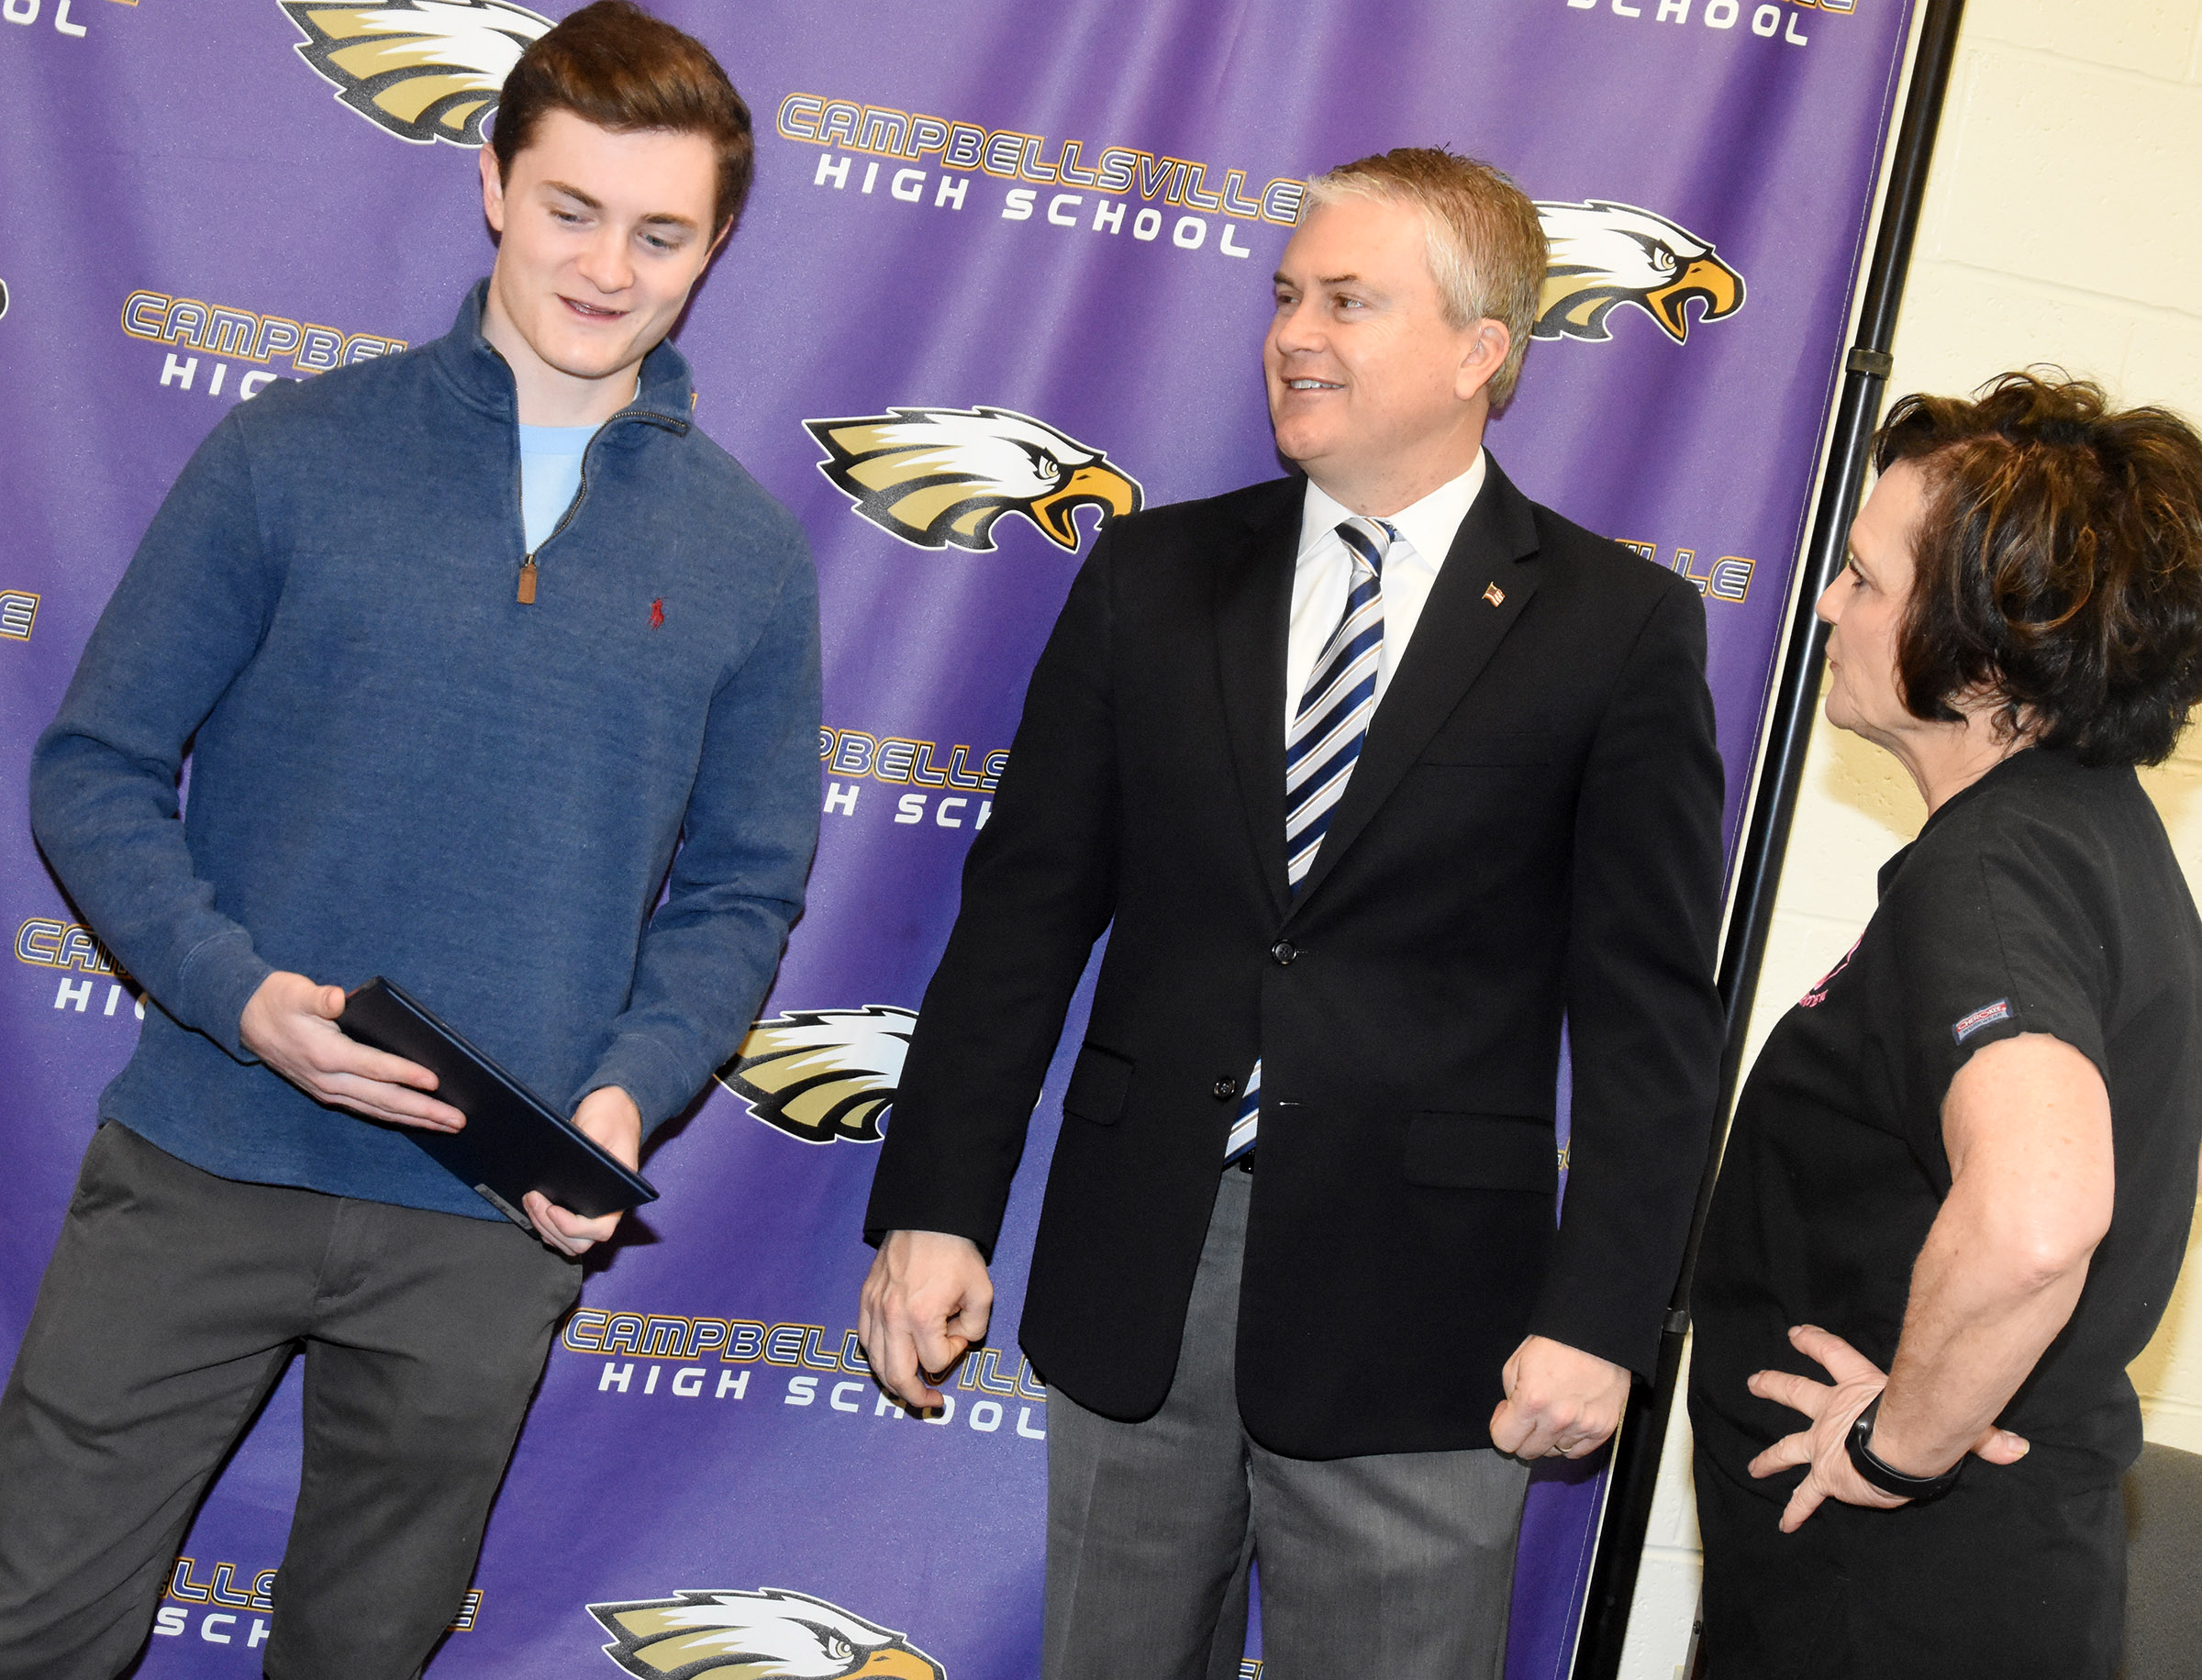 Campbellsville High School senior Bryce Richardson has been appointed to the U.S. Naval Academy, based on a nomination from U.S. Rep. James Comer, R-Ky. Comer came to CHS on Tuesday, Jan. 23, to meet with Richardson. Above, Bryce talks with his mother, Dr. Marlene Richardson, and Comer.